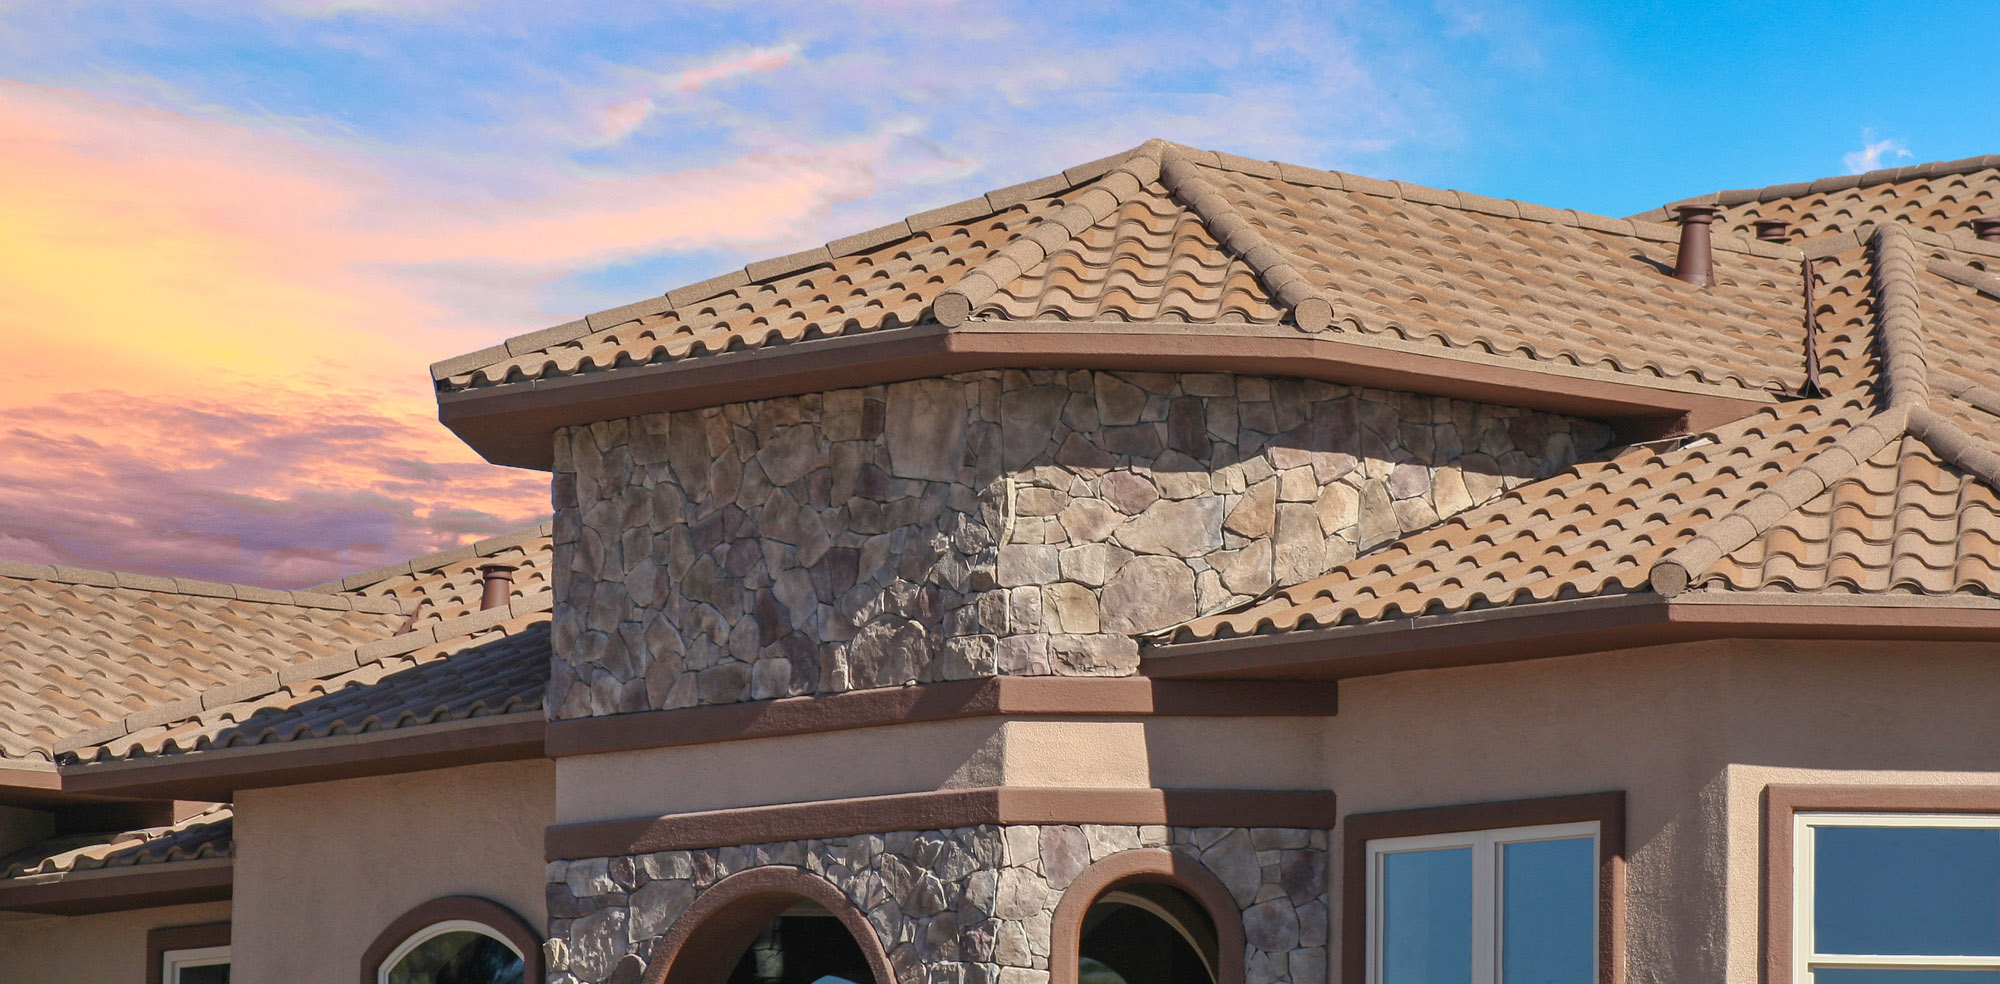 Stone-Coated Steel: The Best Roofing Material for Desert Homes